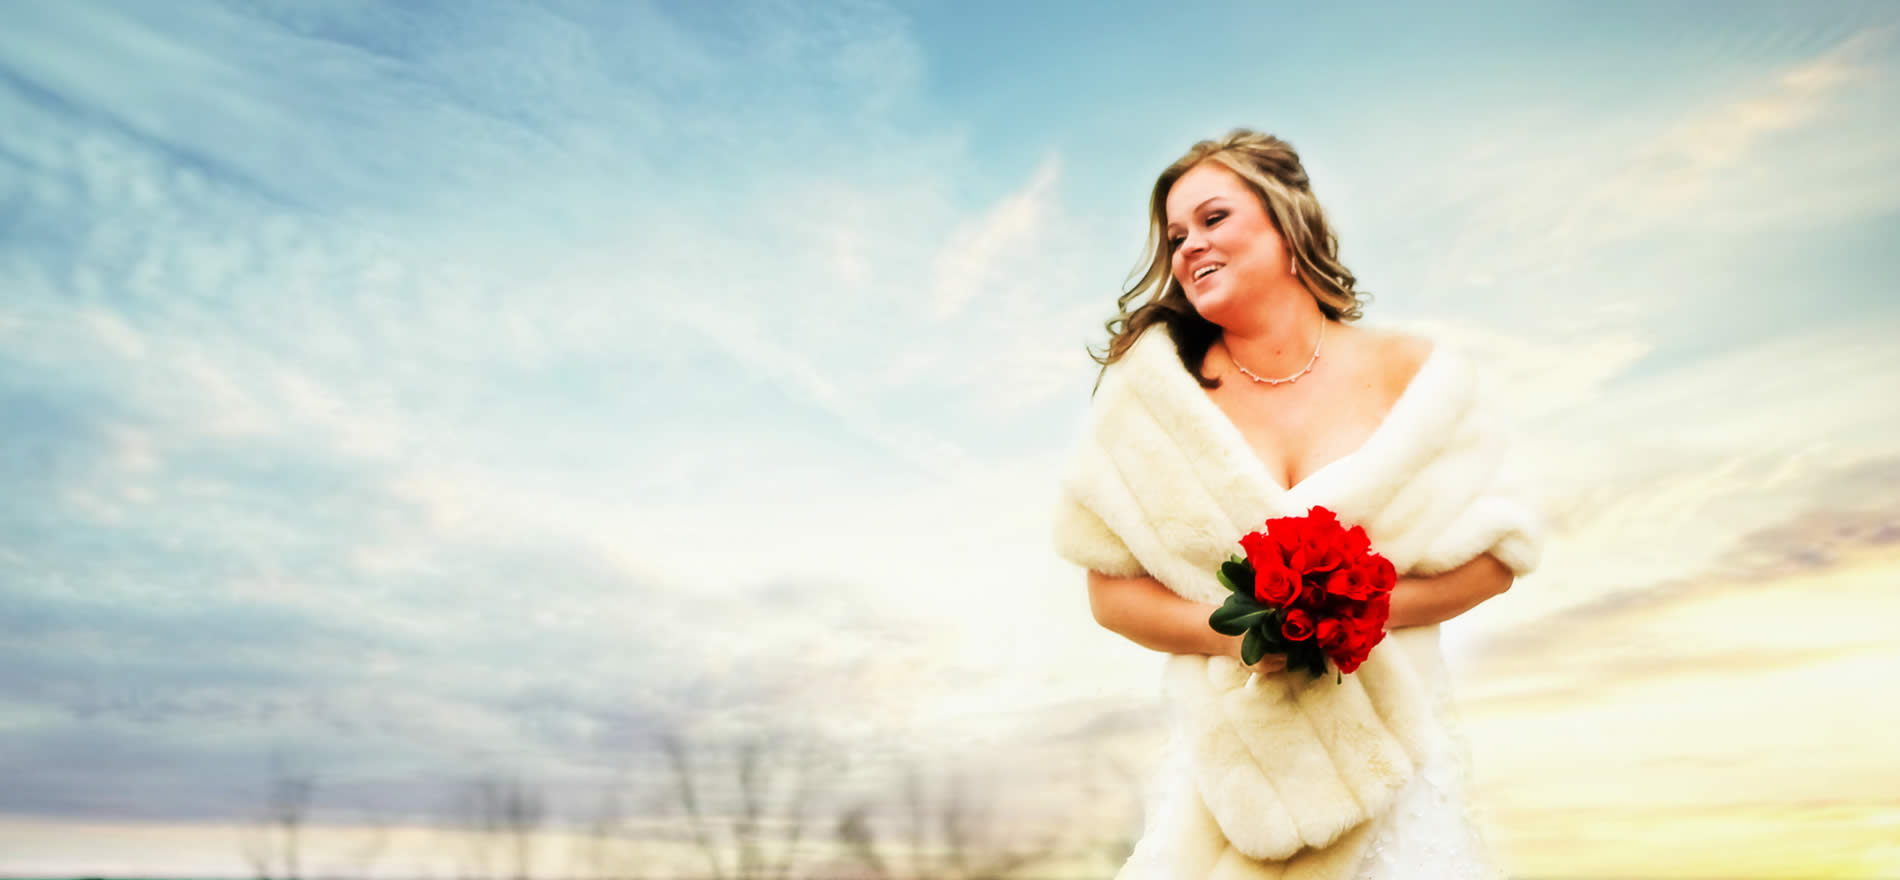 farm wedding near louisville ky - bride in snowy field